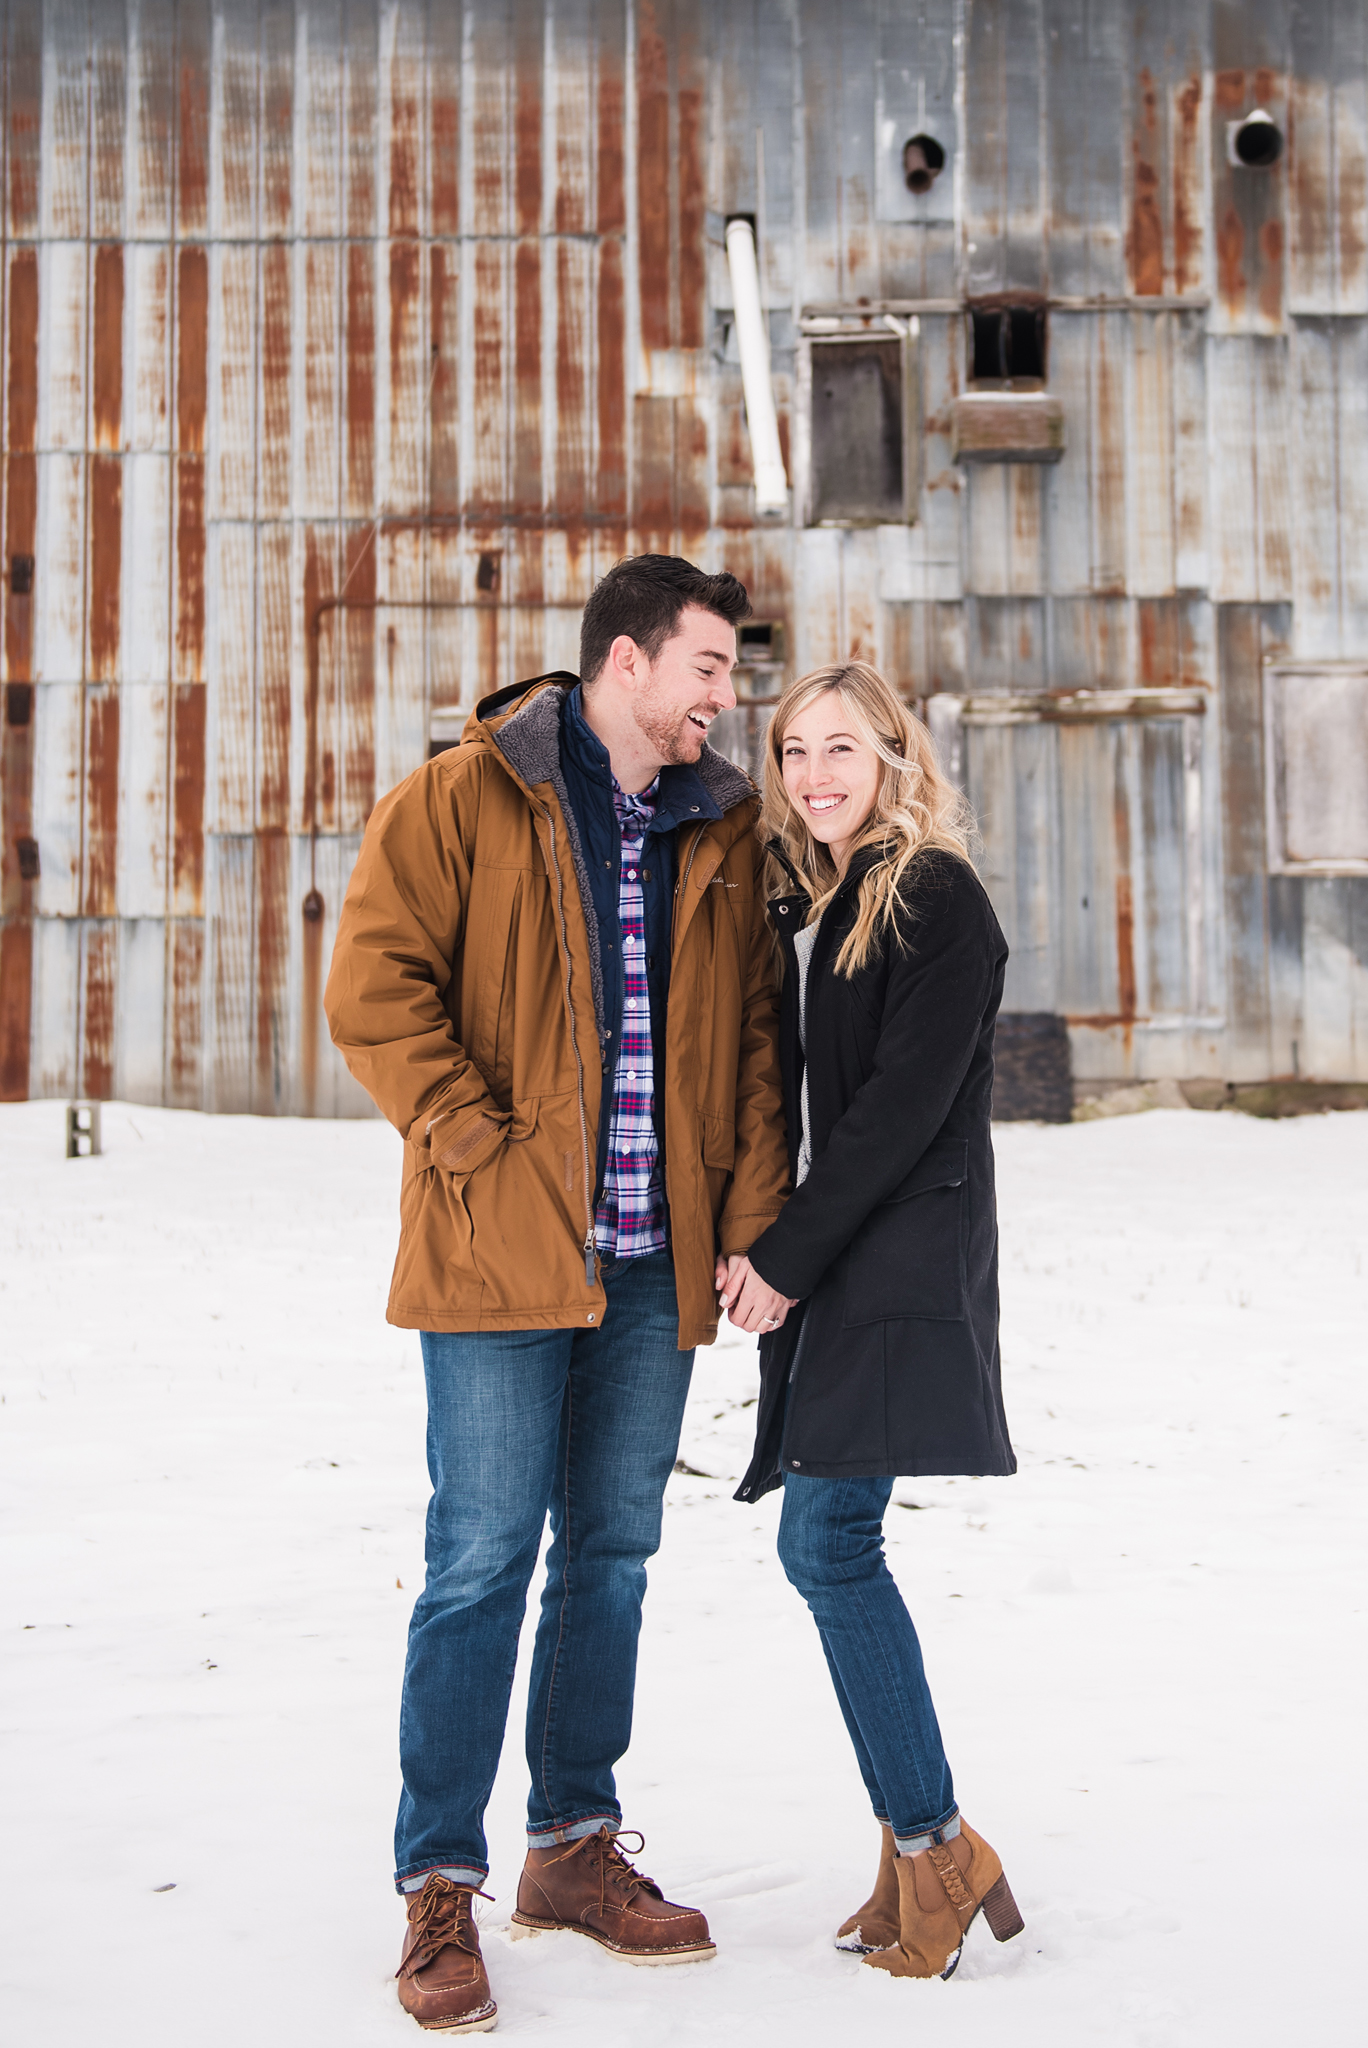 Schoen_Place_Rochester_Engagement_Session_JILL_STUDIO_Rochester_NY_Photographer_DSC_1126.jpg